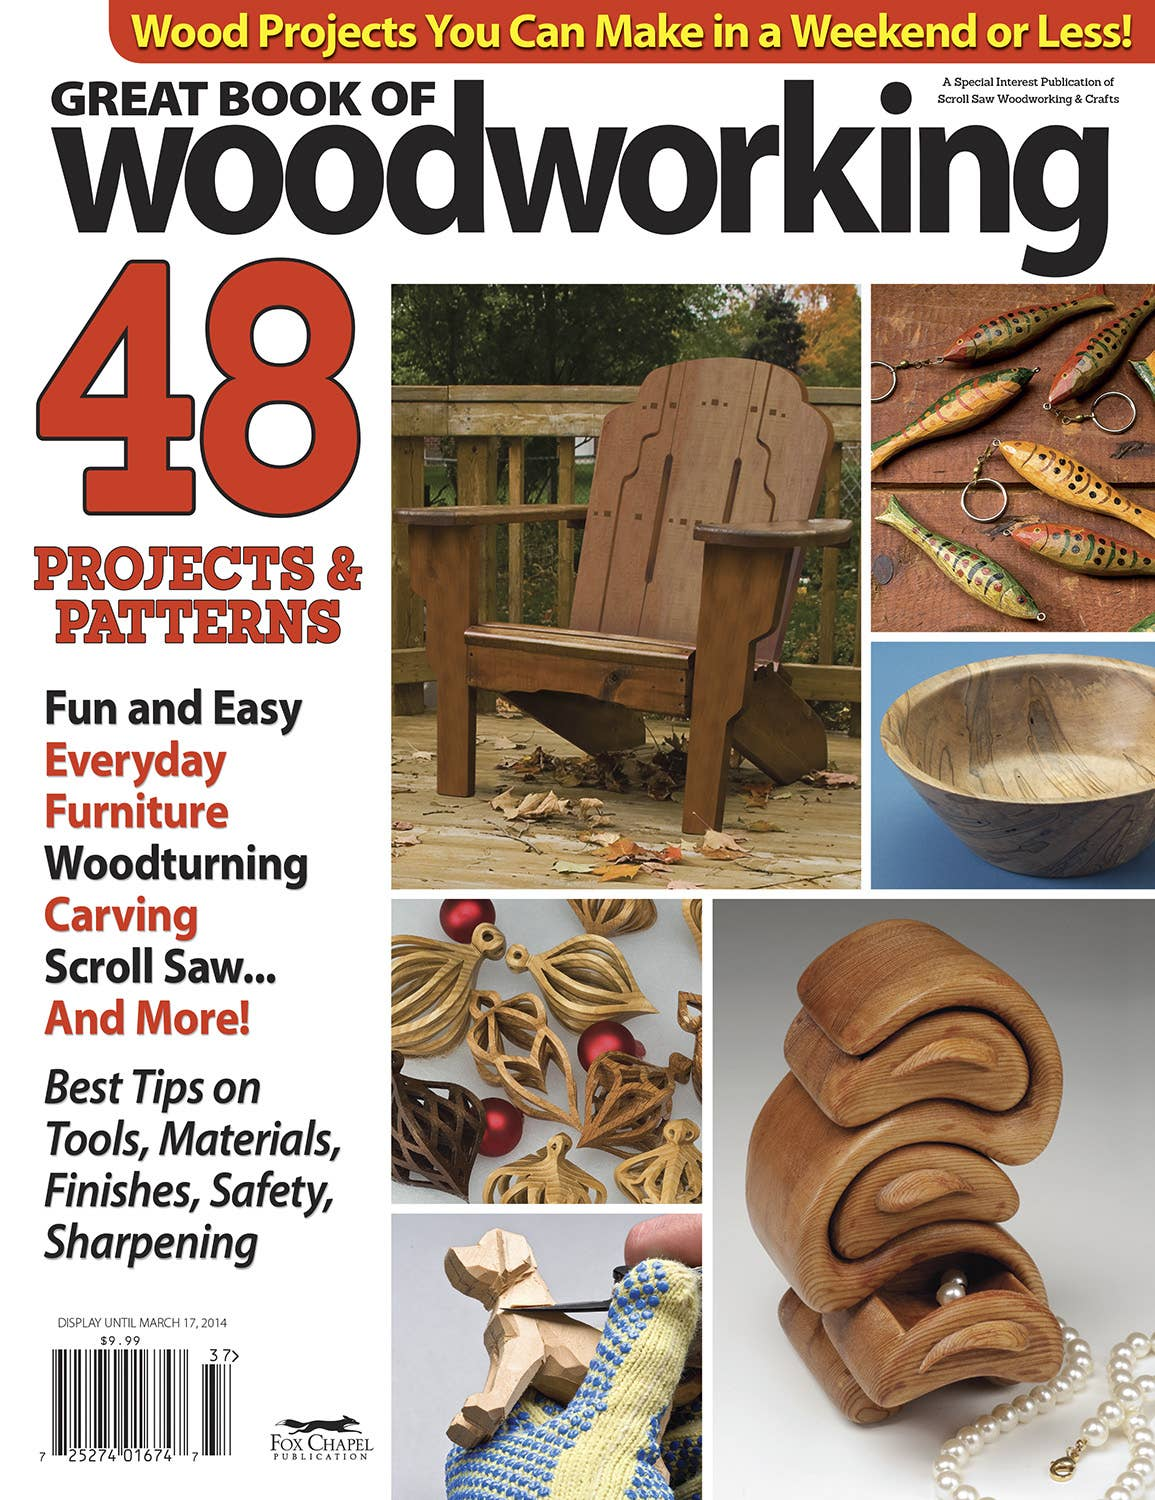 Great Book Of Woodworking Patterns 2013 Fox Chapel Publishing